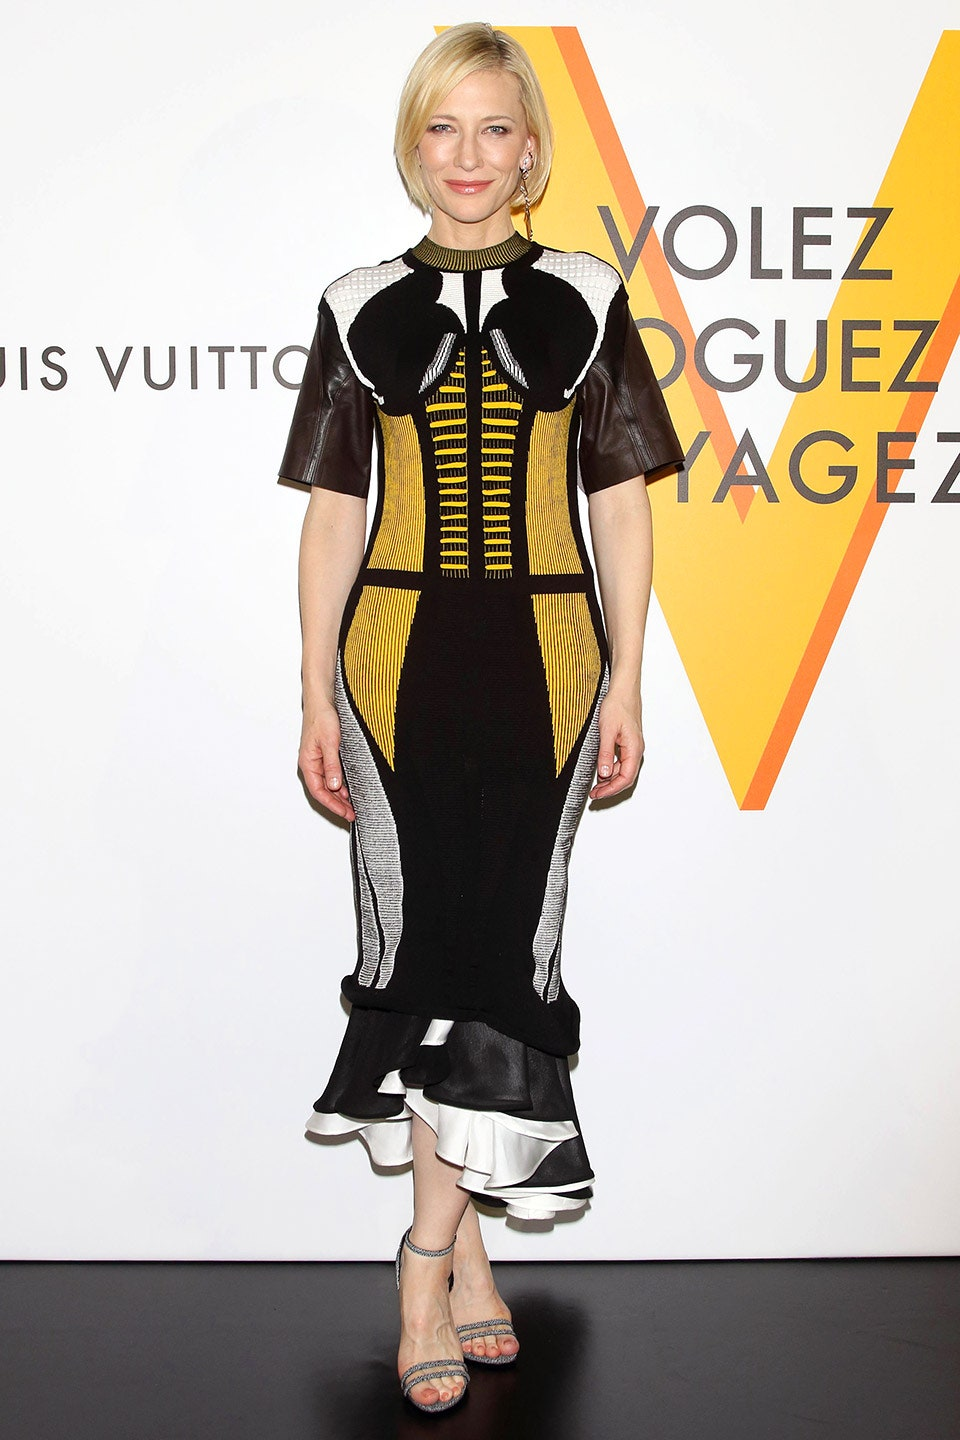 35_perfectly_complementing_the_step-and-repeat_she_wore_a_black_white_grey_and_yellow_louis_vuitton_dress_to_celebrate_an_exhibition_in_honor_of_the_designer_louis_vuitton_exhibition_2016.jpg